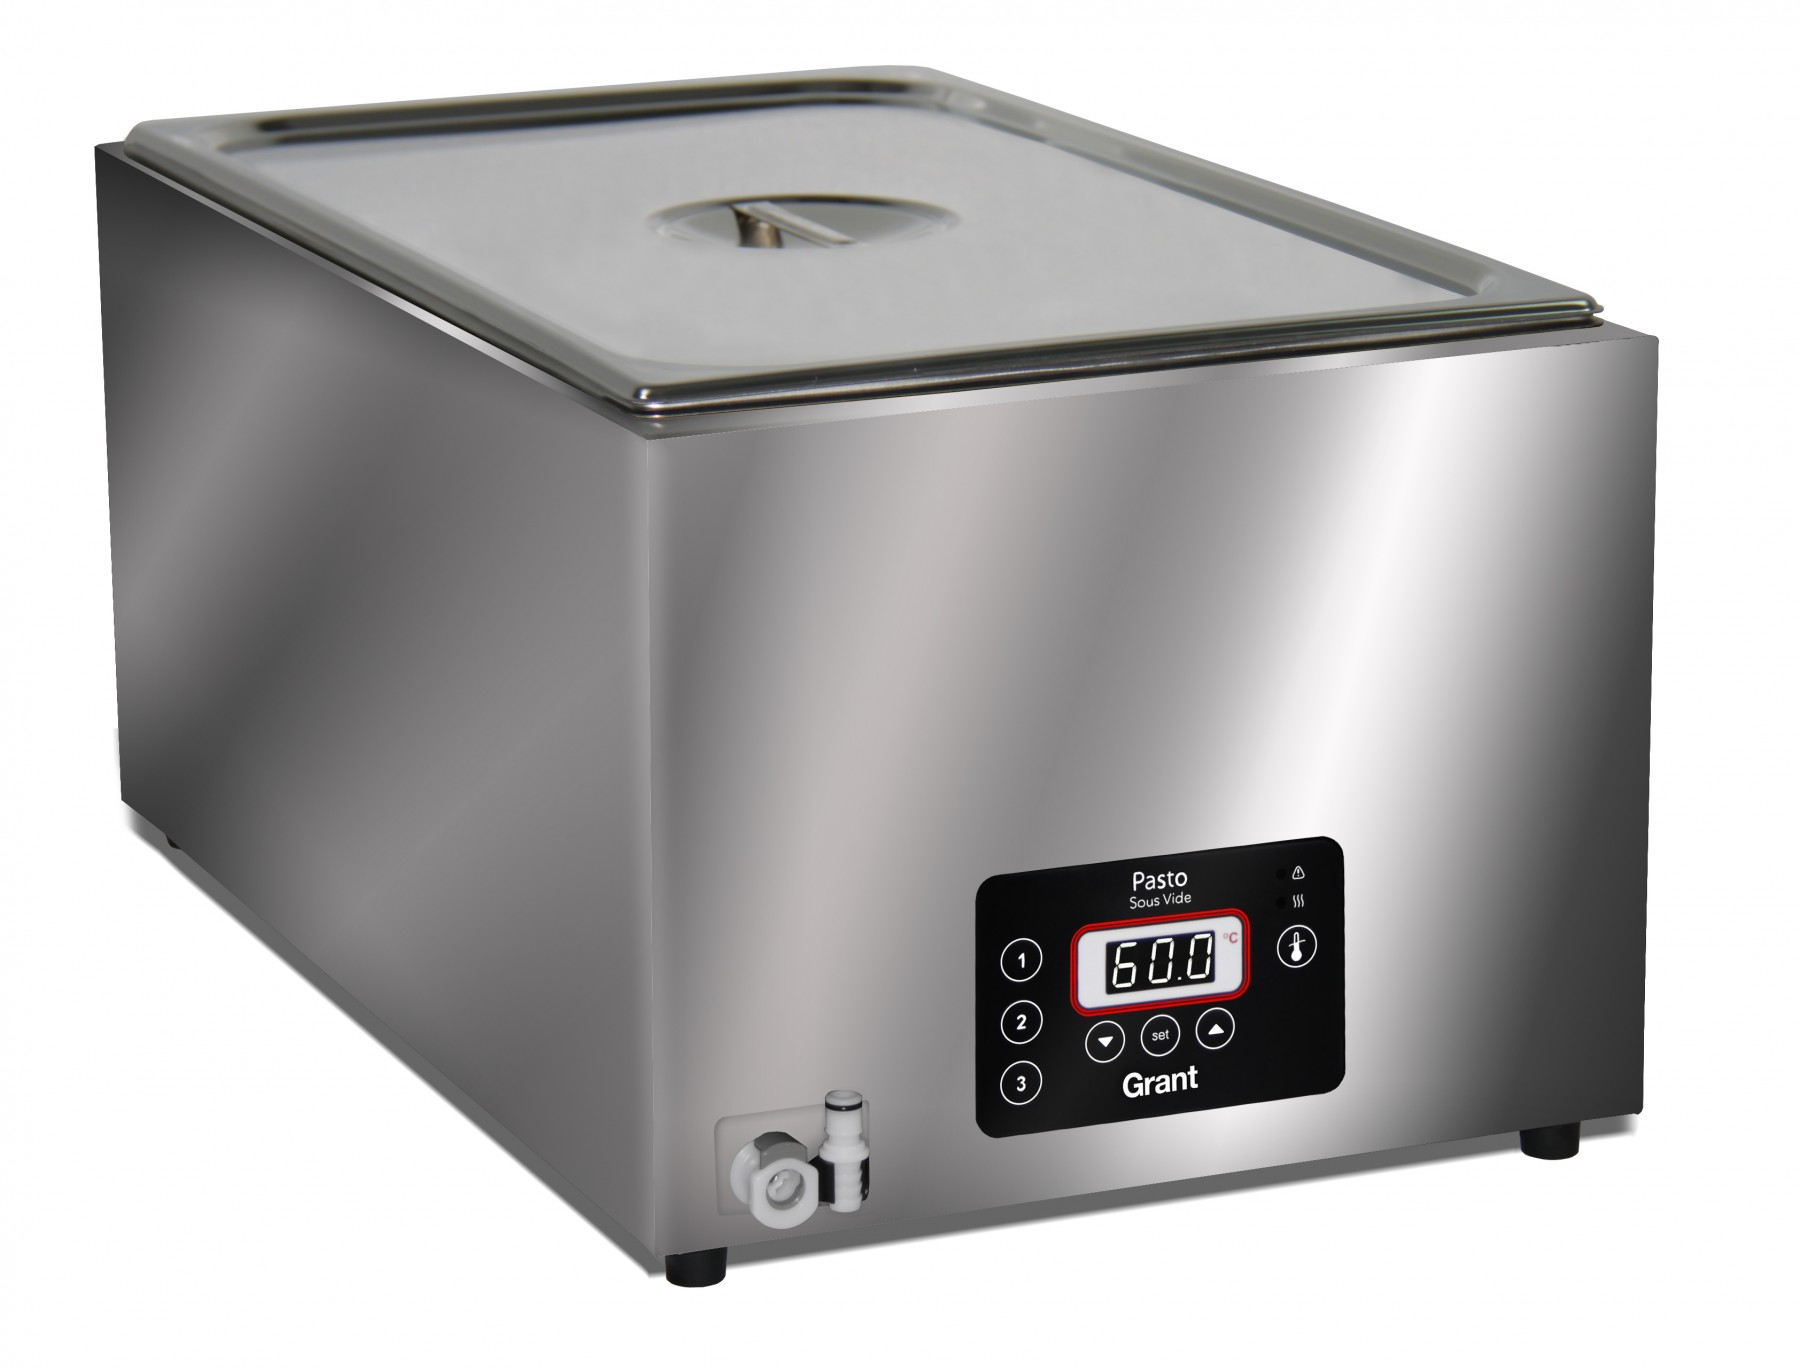 grant pasto 5 litre sous vide water bath uk catering equipment sales and advice. Black Bedroom Furniture Sets. Home Design Ideas